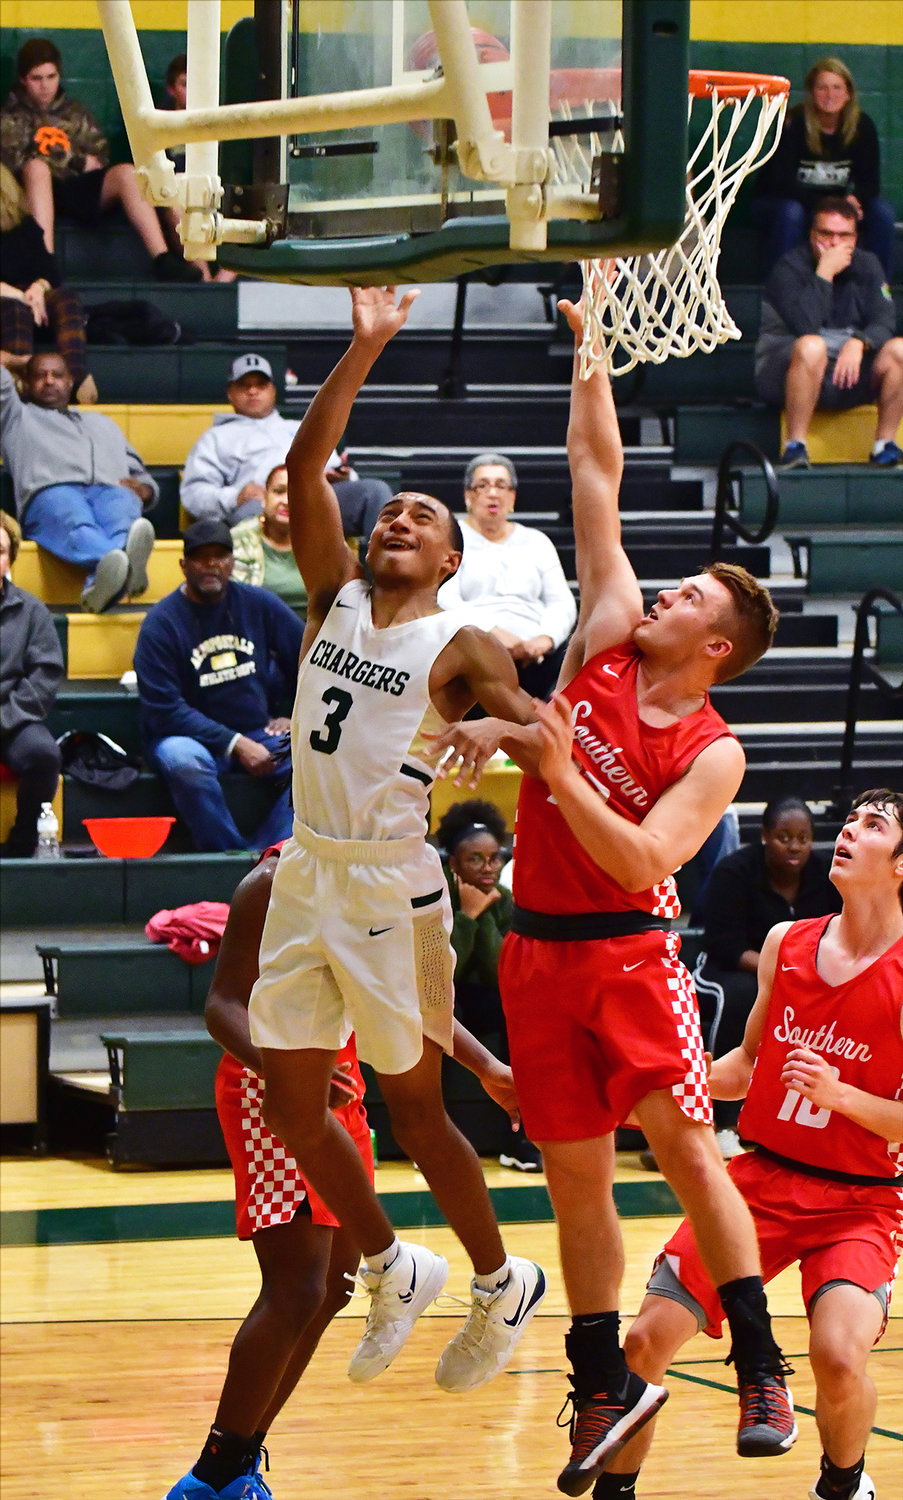 Northwood's Justin Brower floats a shot up to the basket against Southern Alamance Thursday night. Northwood won the game to advance to play Lee Senior at 7 on Friday.